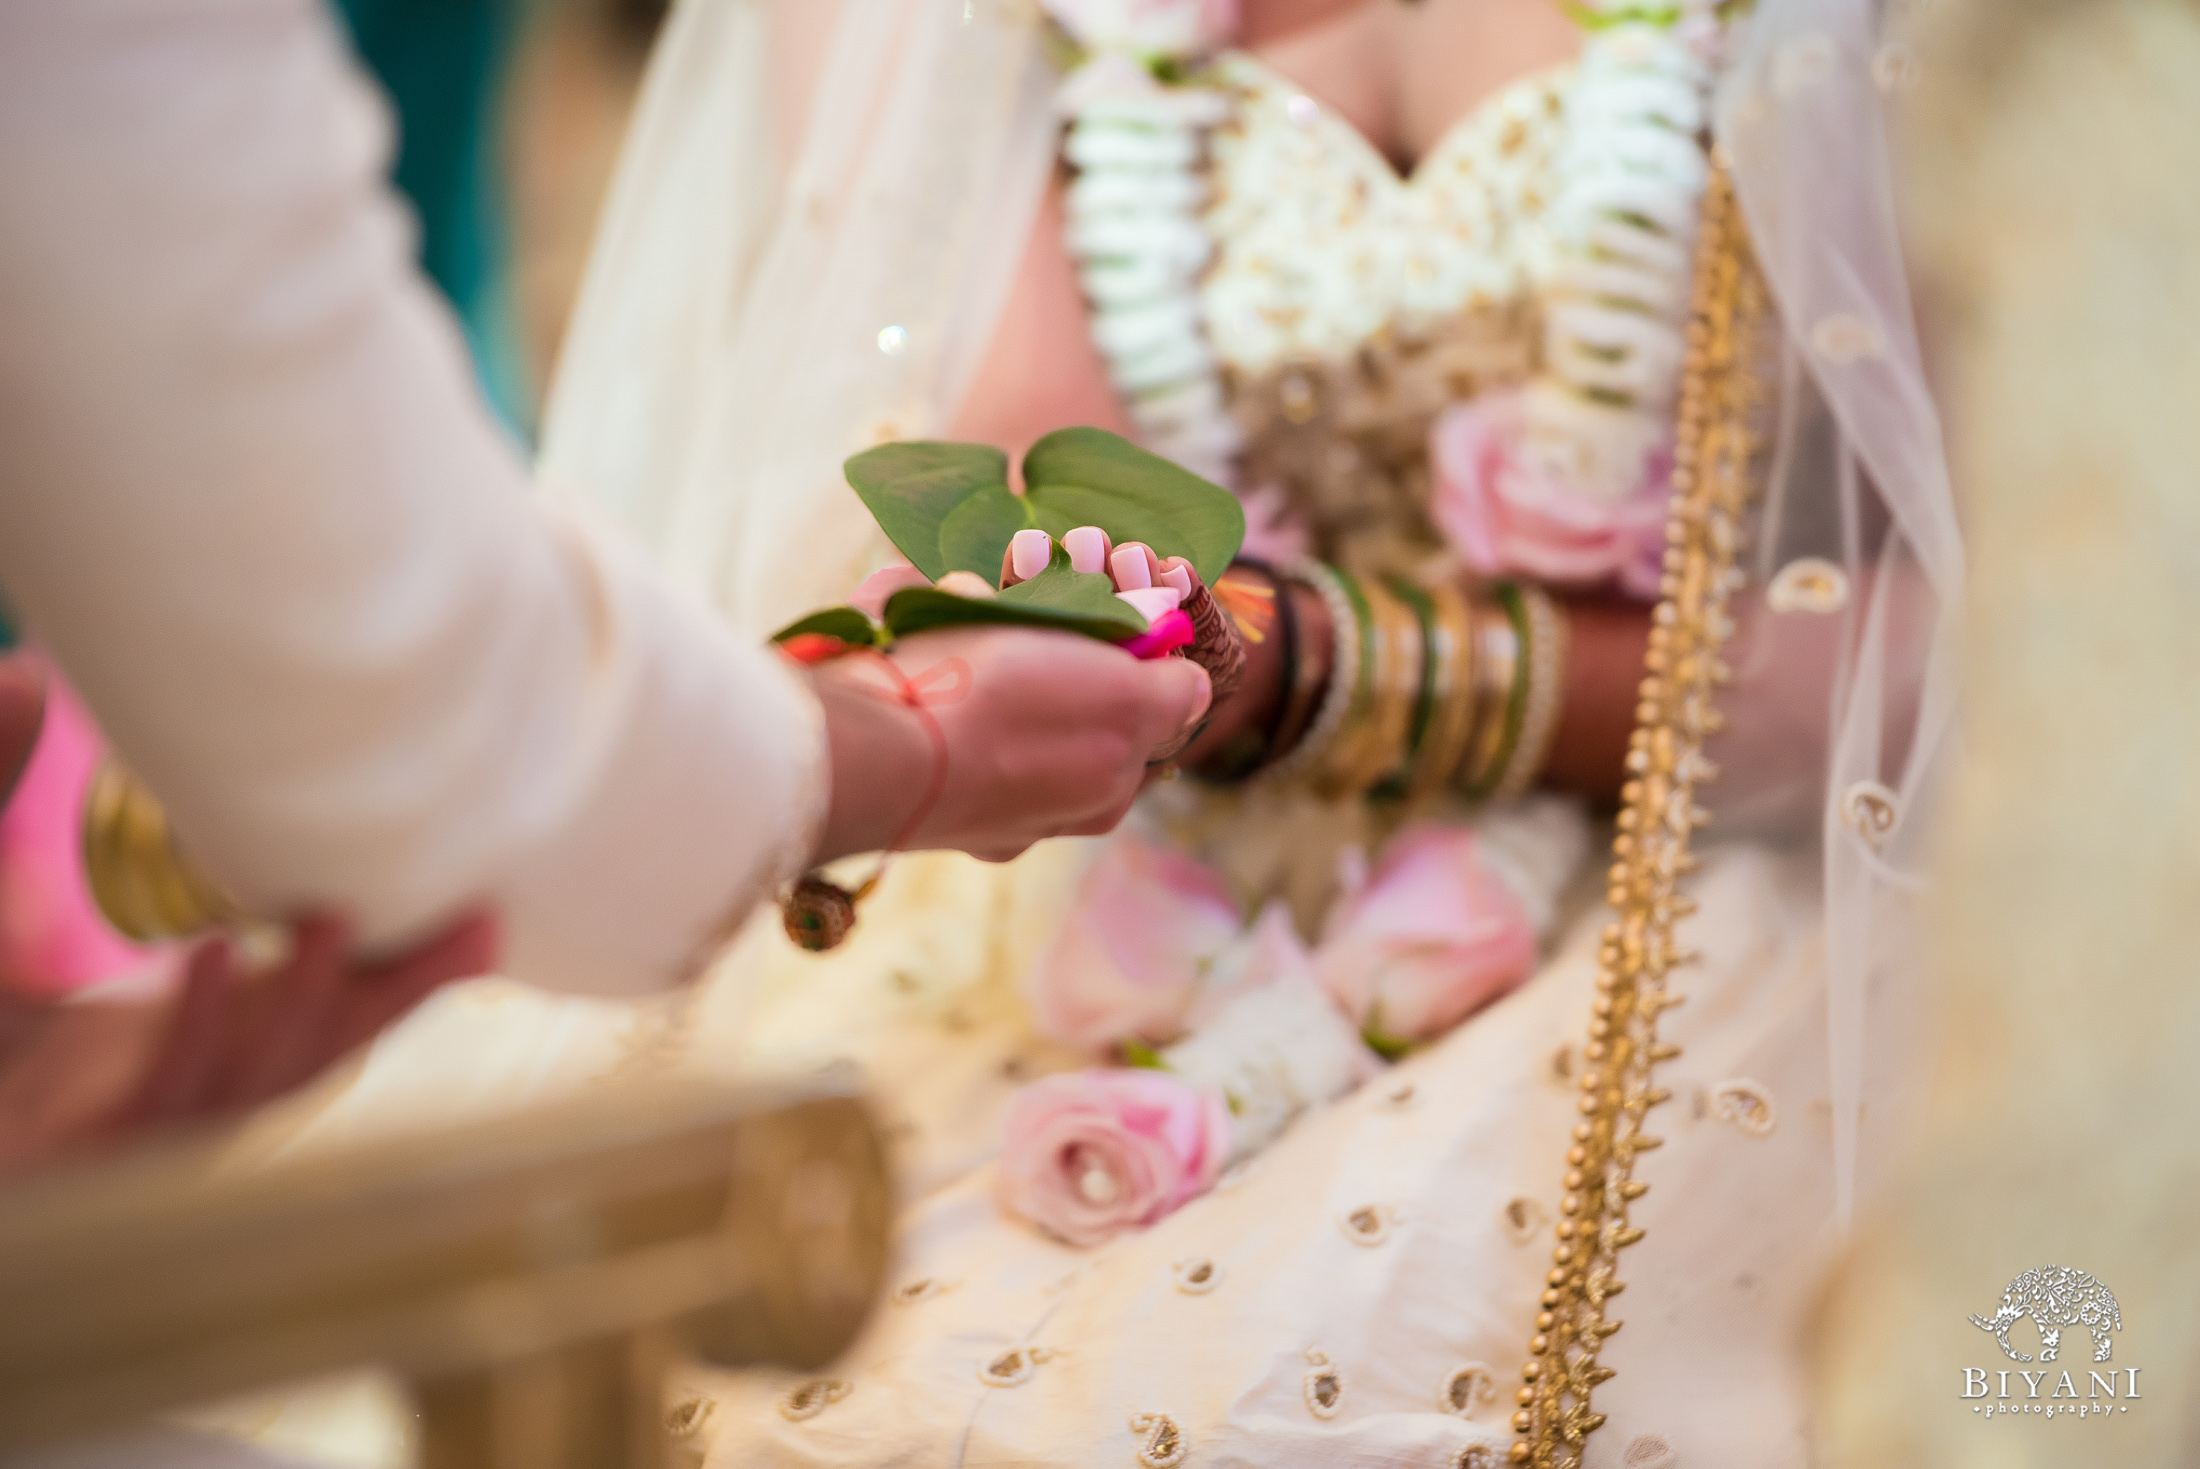 Bride and groom during wedding ceremony holding leaves